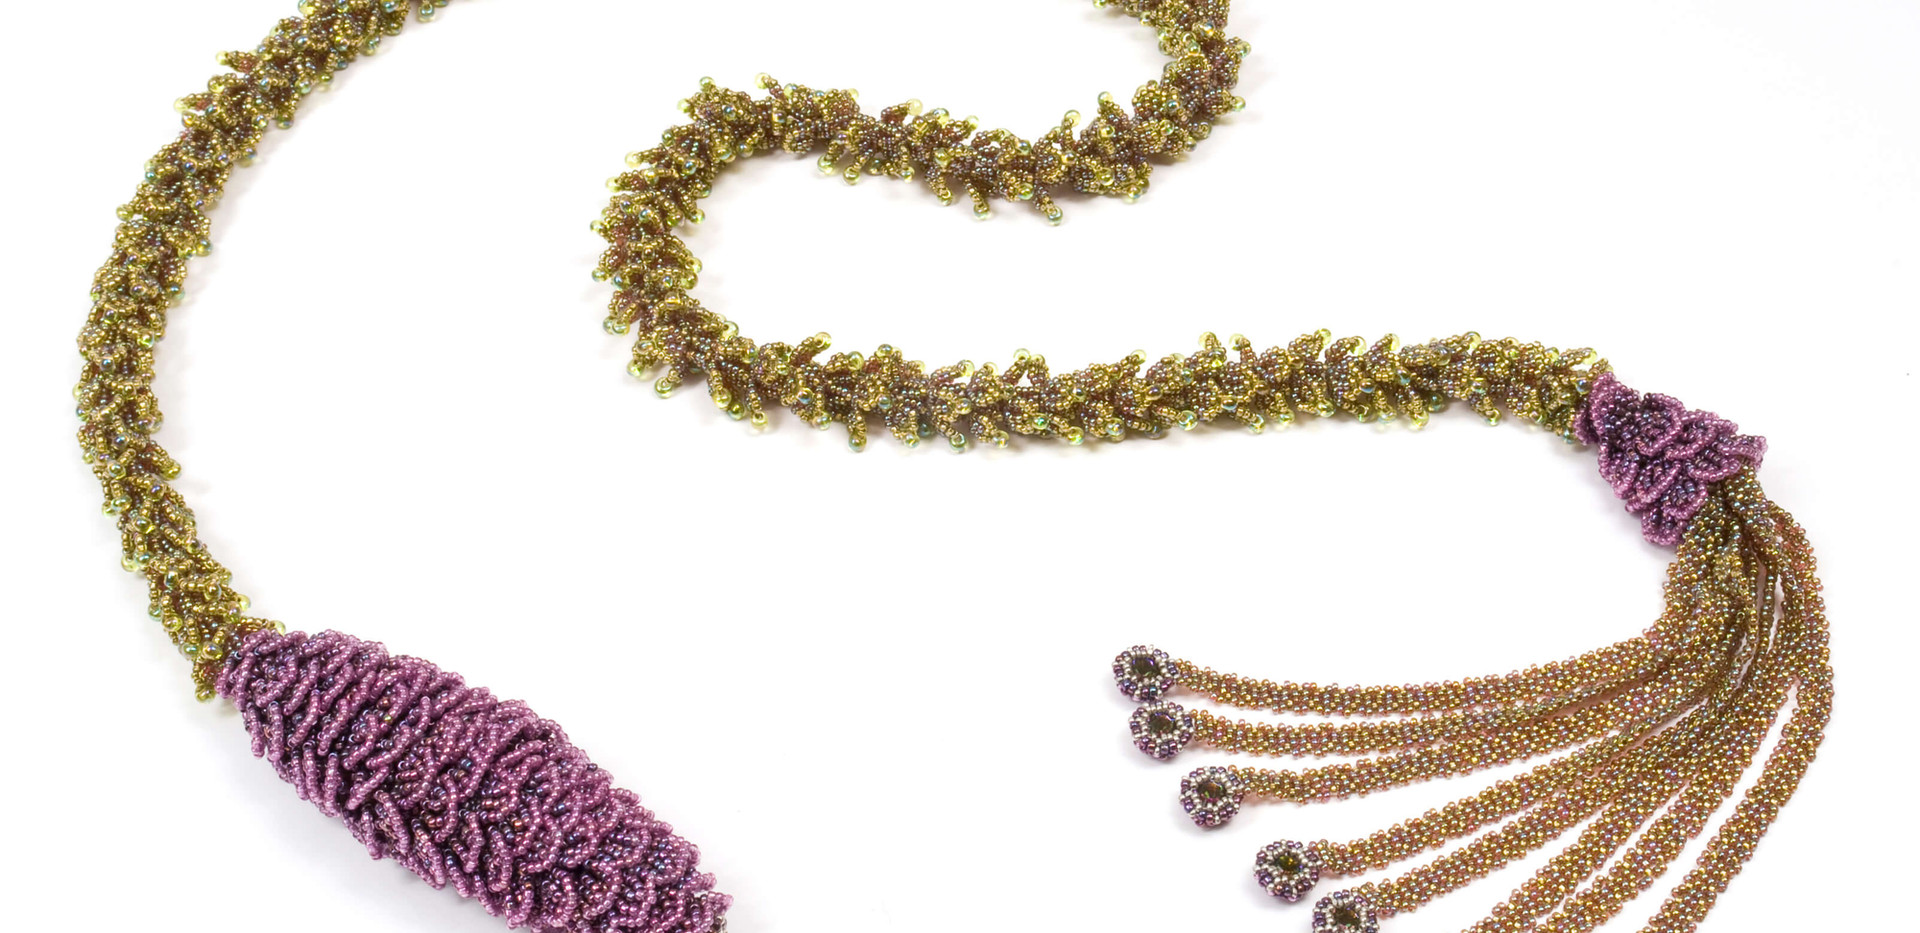 Pining Over You Lariat in Olive and Amethyst